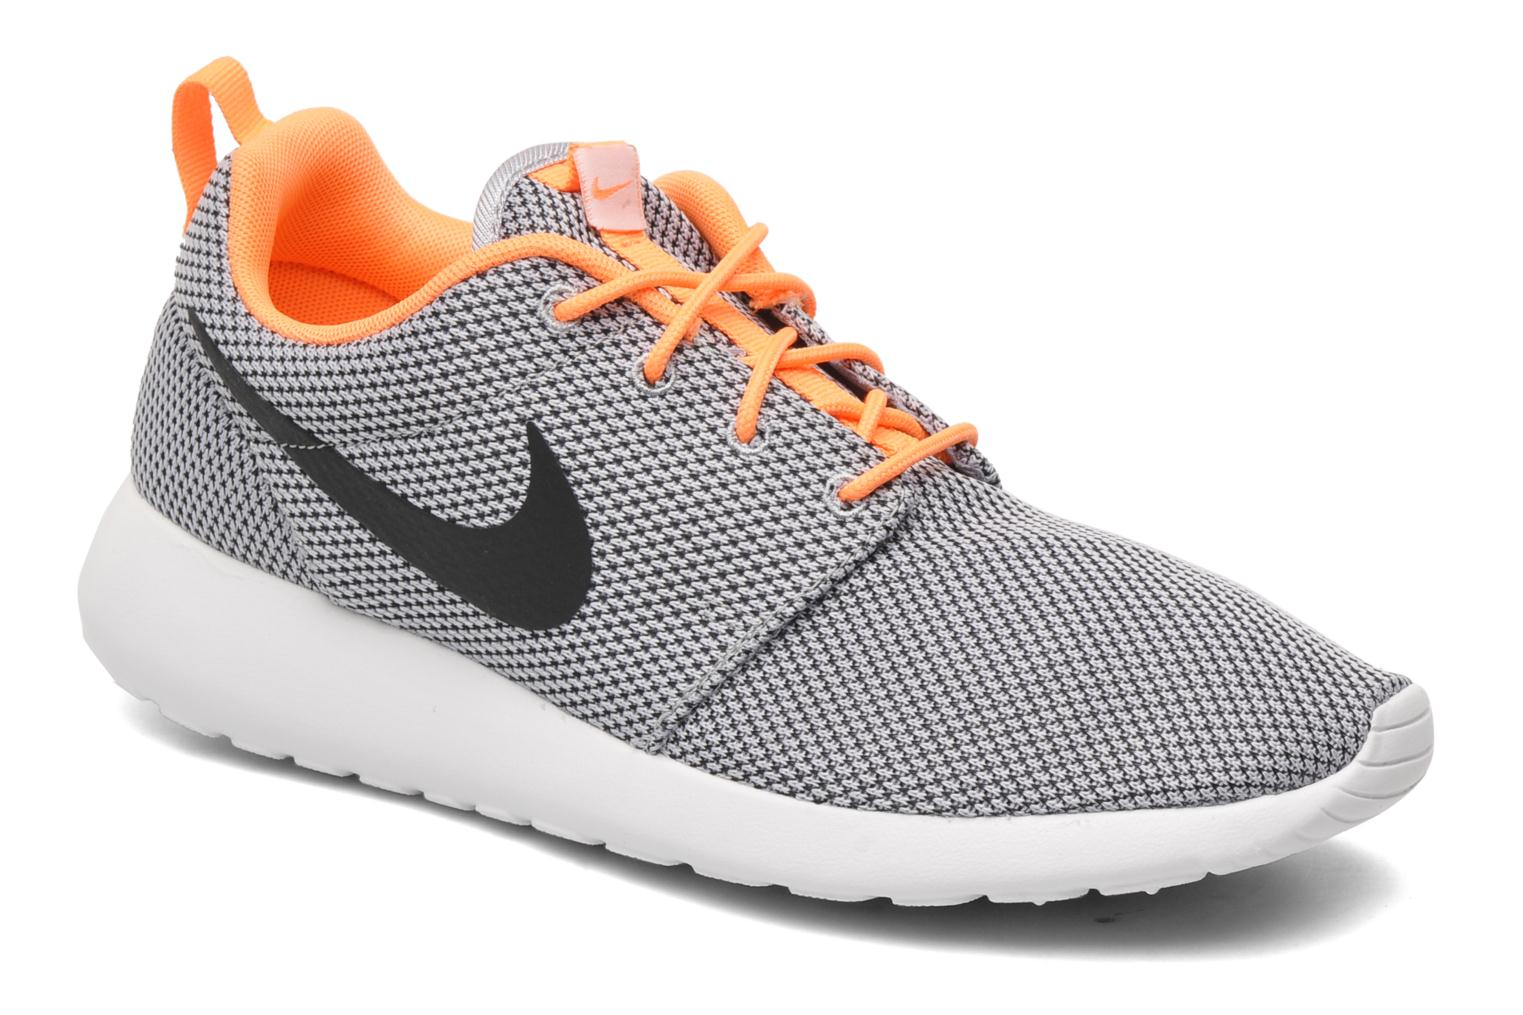 Nike Roshe One Wolf Grey/Black-Atmc Orange-White